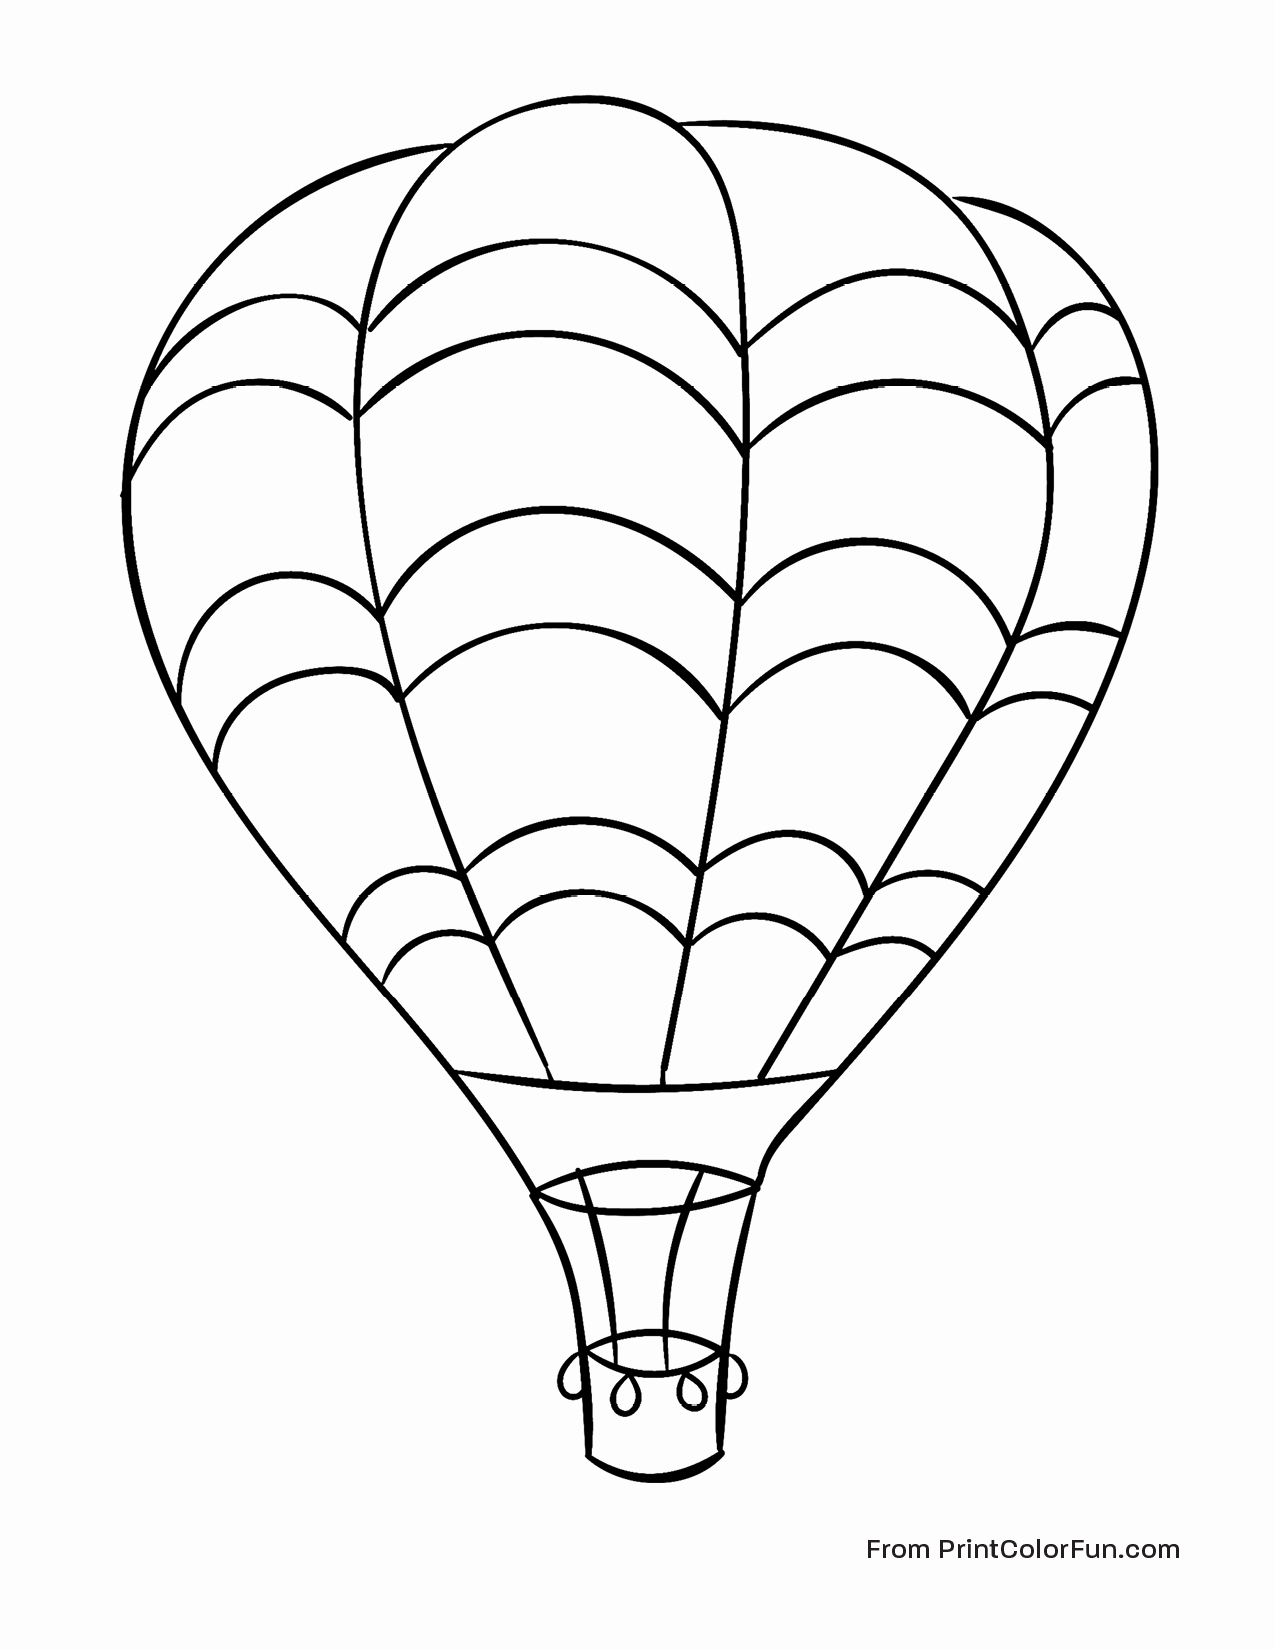 Surprise Hot Air Balloon Coloring Sheet Unbeli Unknown Collection Of Fresh Hot Air Balloons Coloring Pages Collection to Print